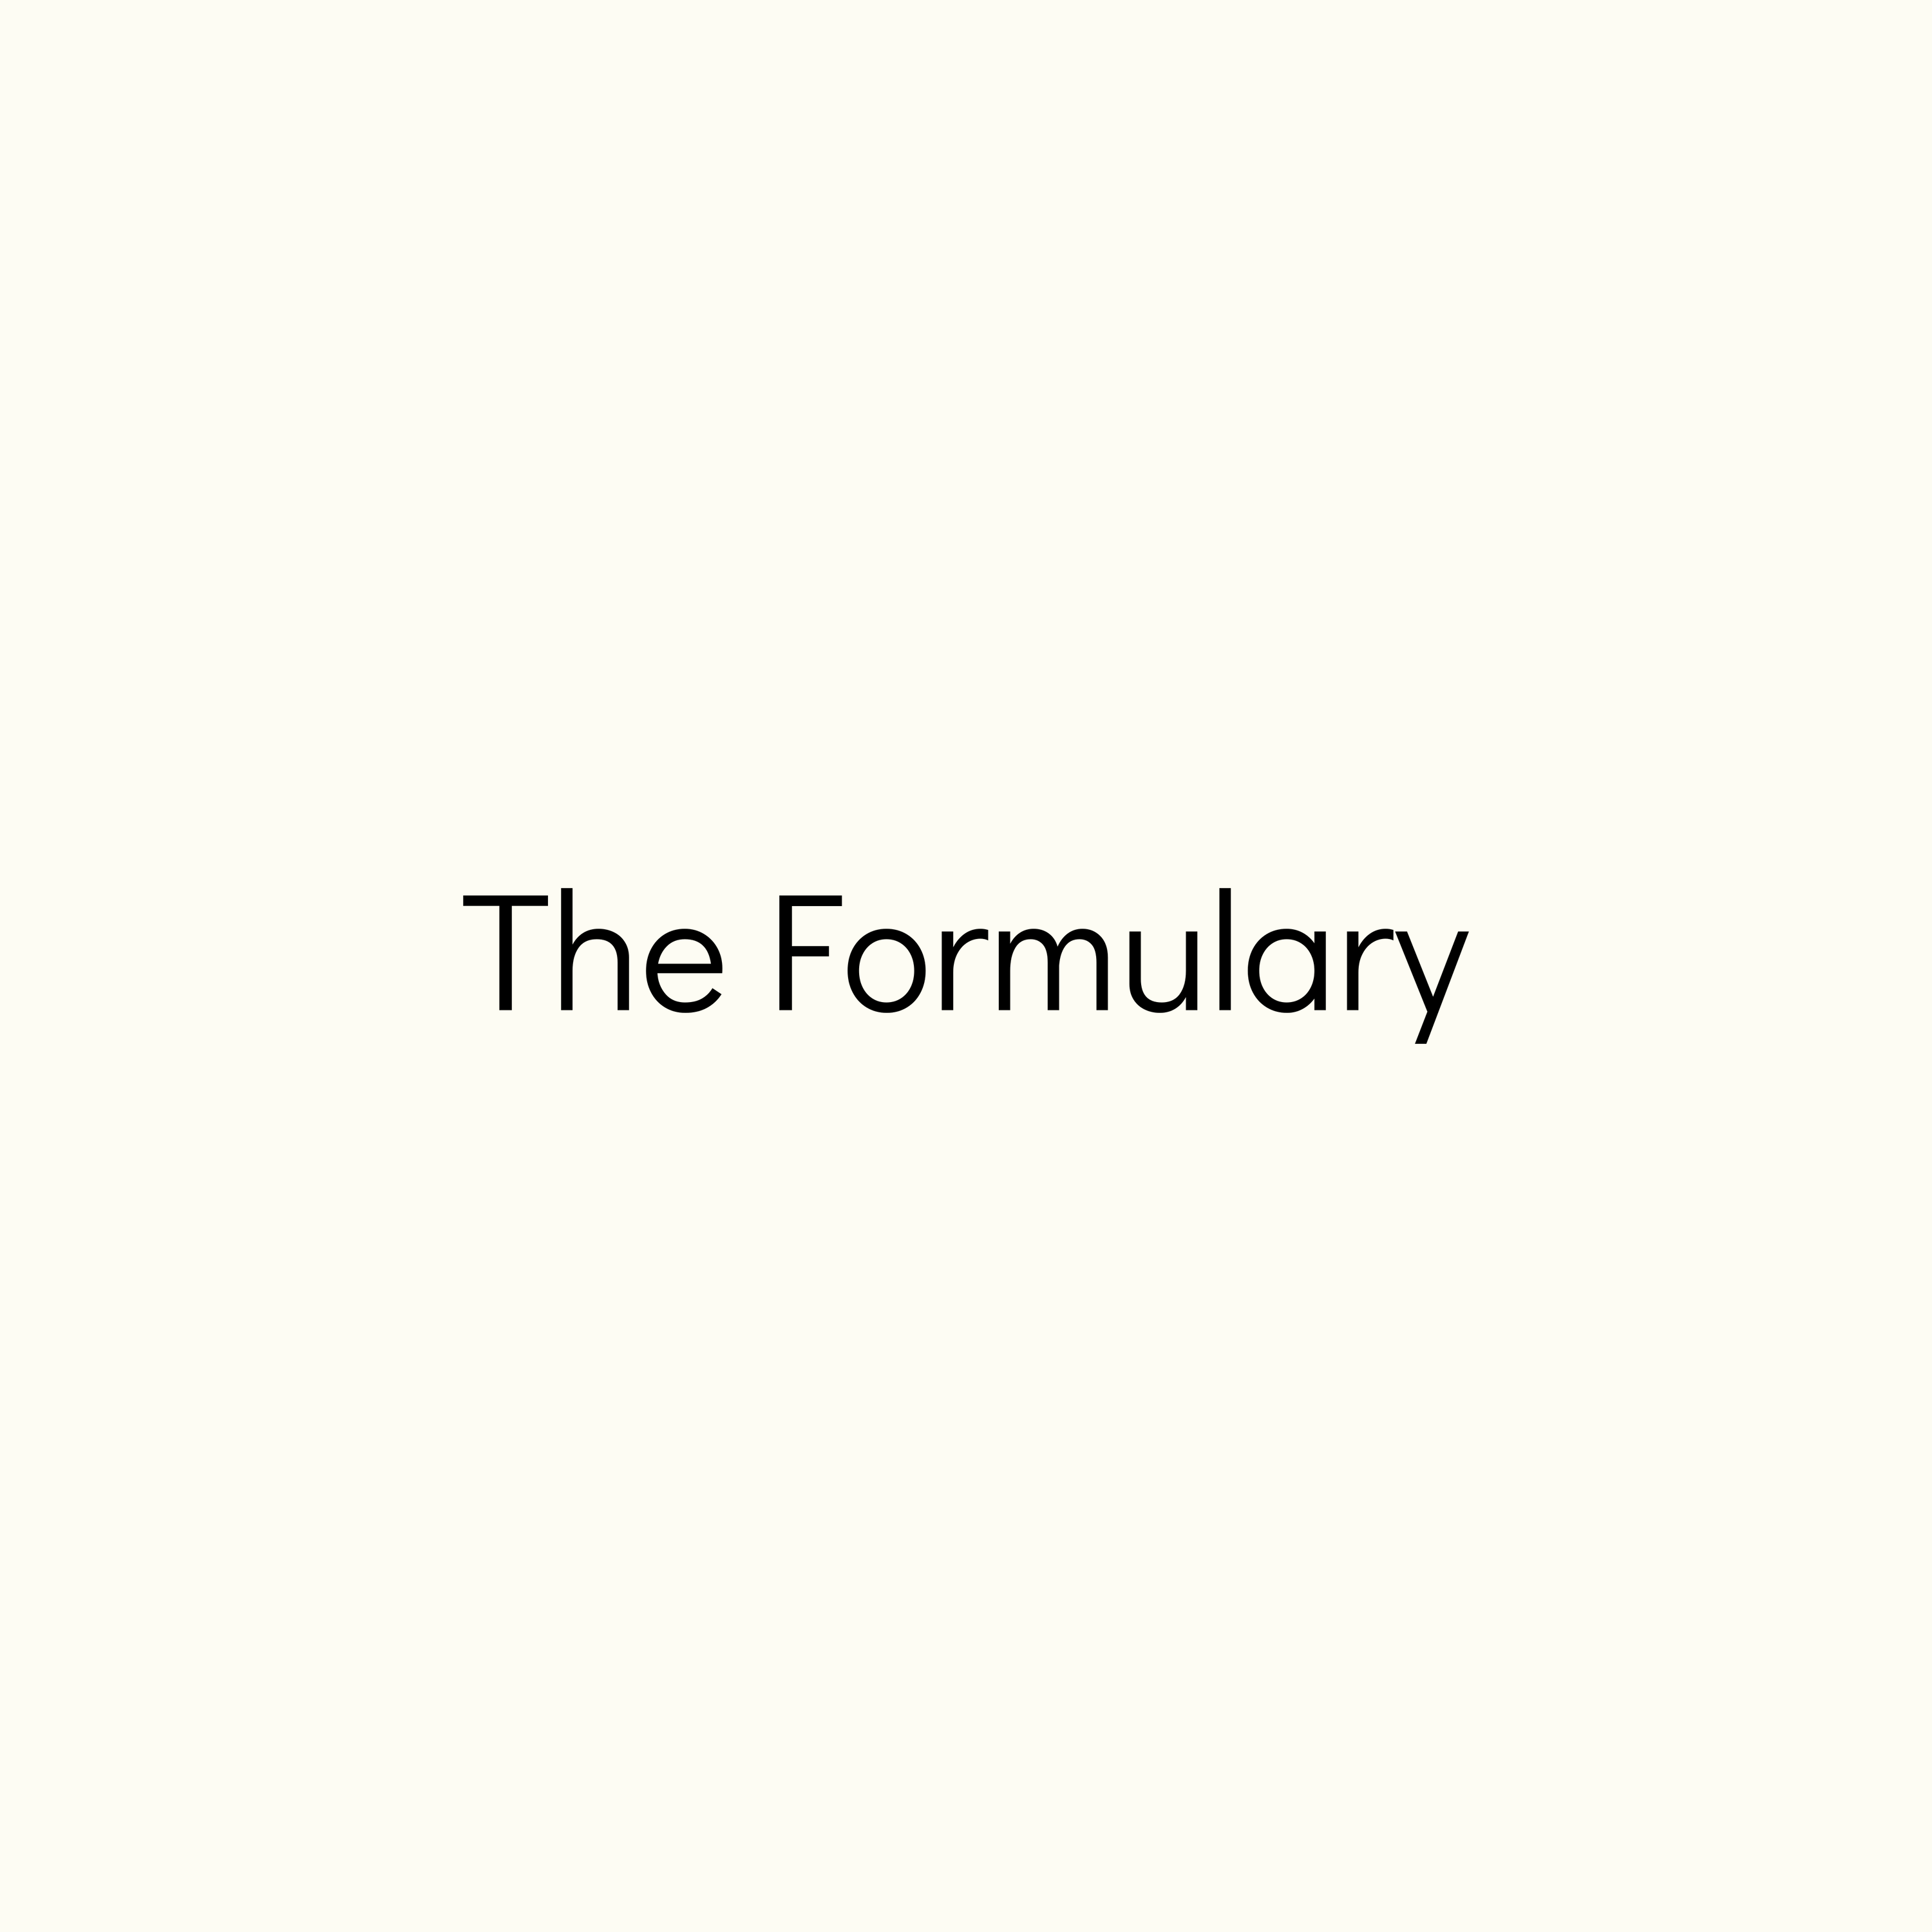 The Formulary